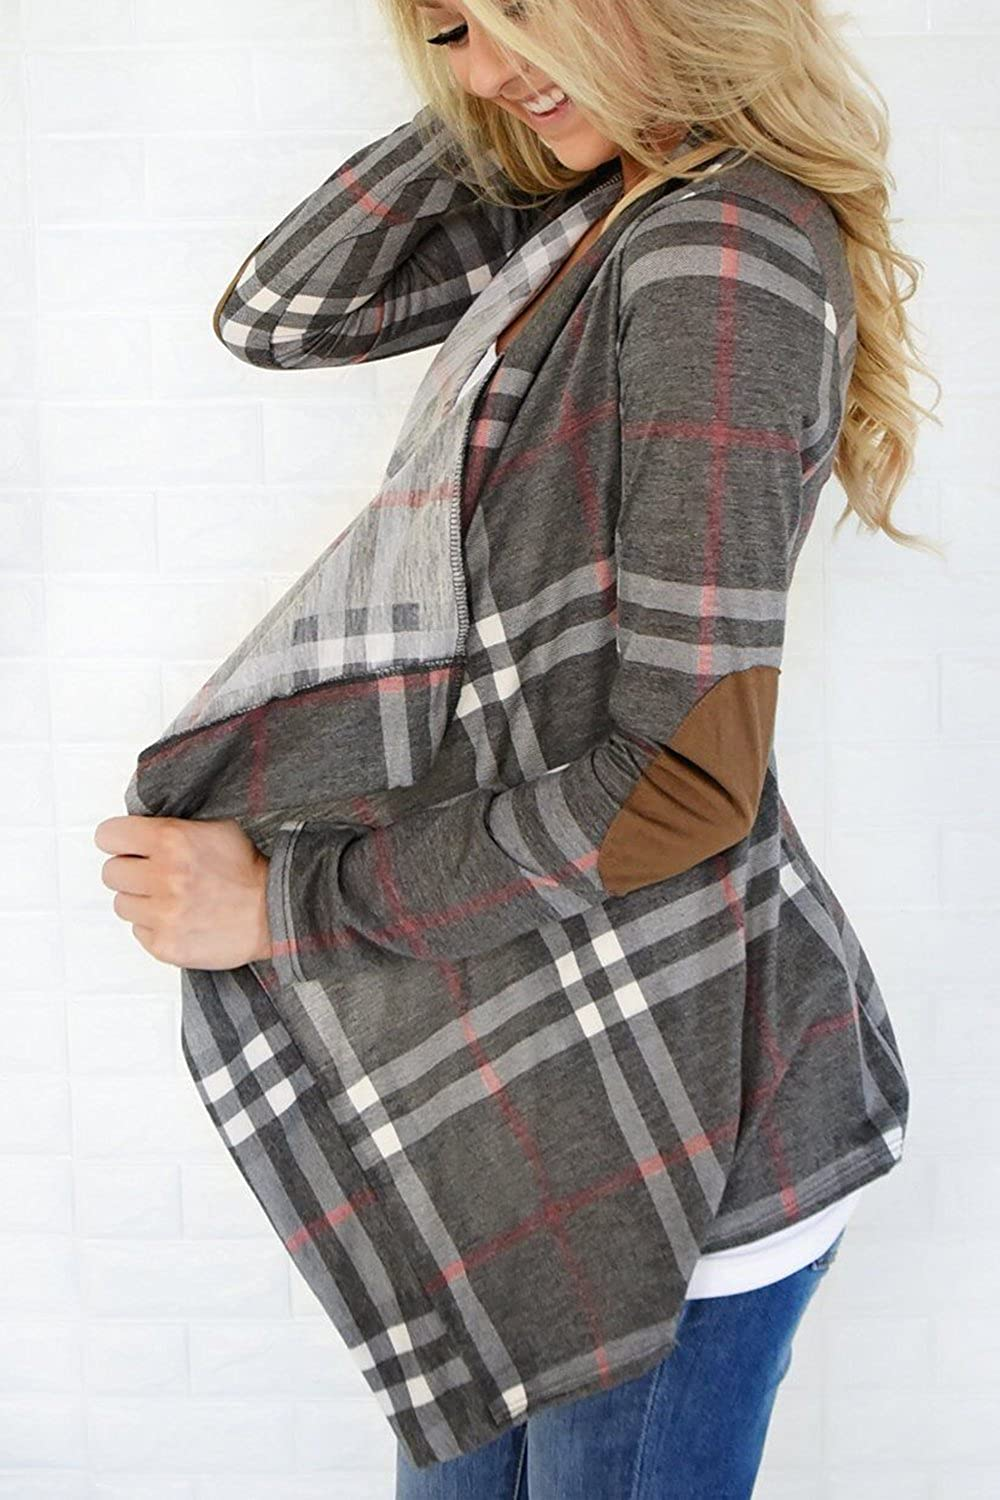 Women Casual Waterfall Open Front Plaid Cardigans Outerwear Grey S